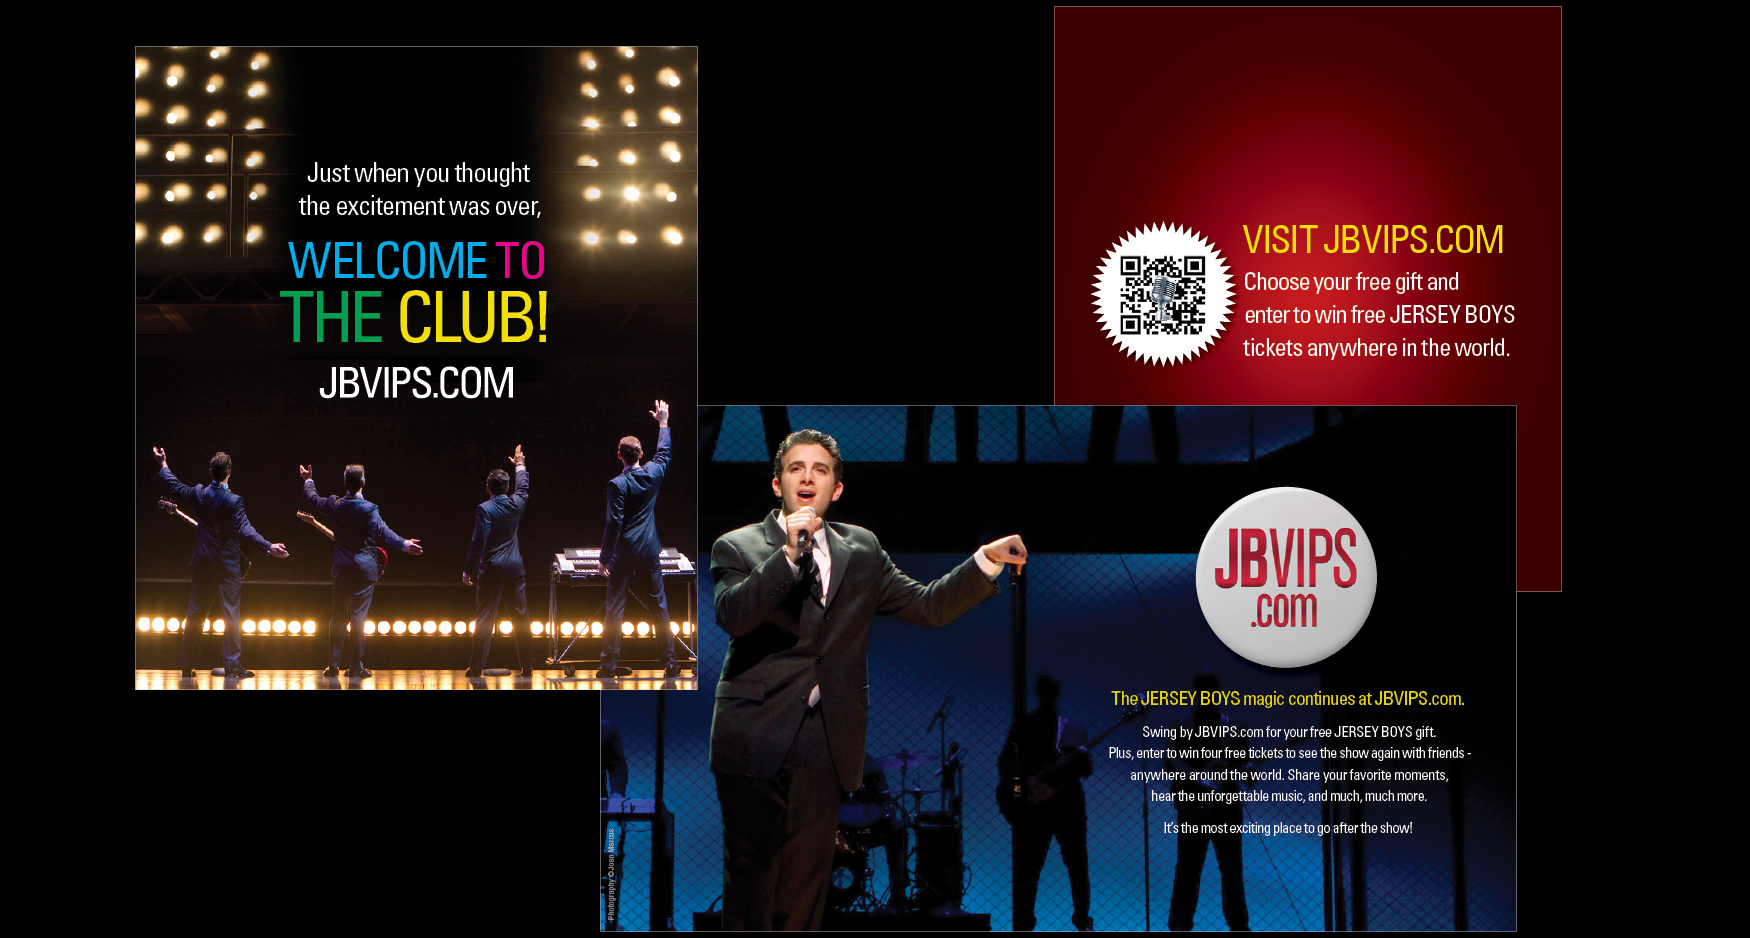 BP Large Images36 - JERSEY BOYS - JBVIPS.COM HANDOUT